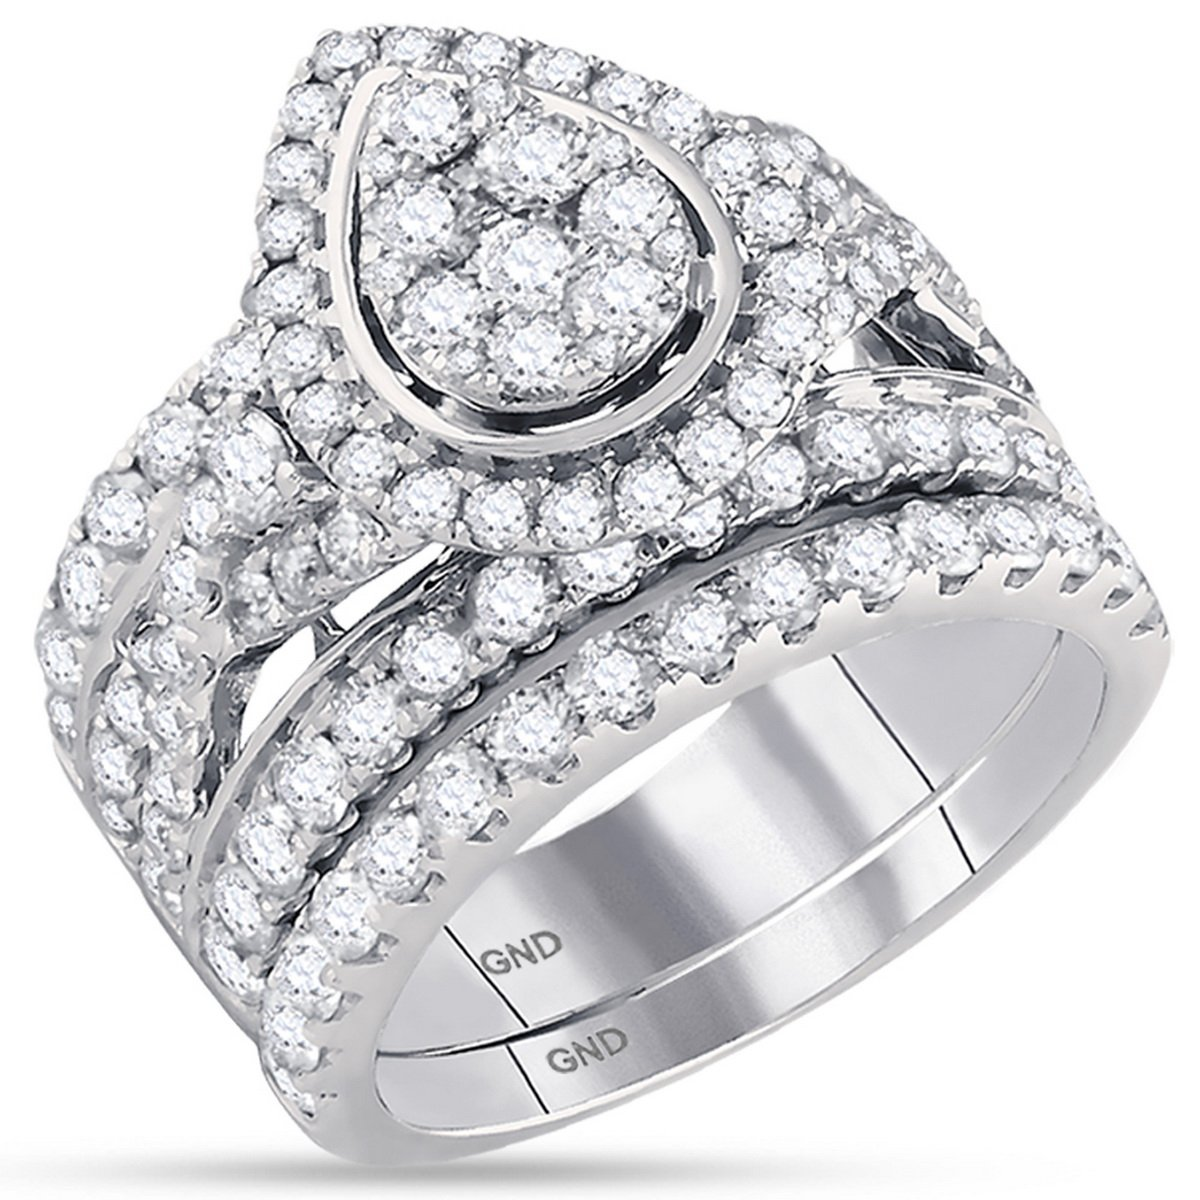 14K White Gold Bridal Pear Tear Infinity Love Knot Diamond Engagement Ring Set 2 7/8 CT (I1-I2 clarity; G-H color)